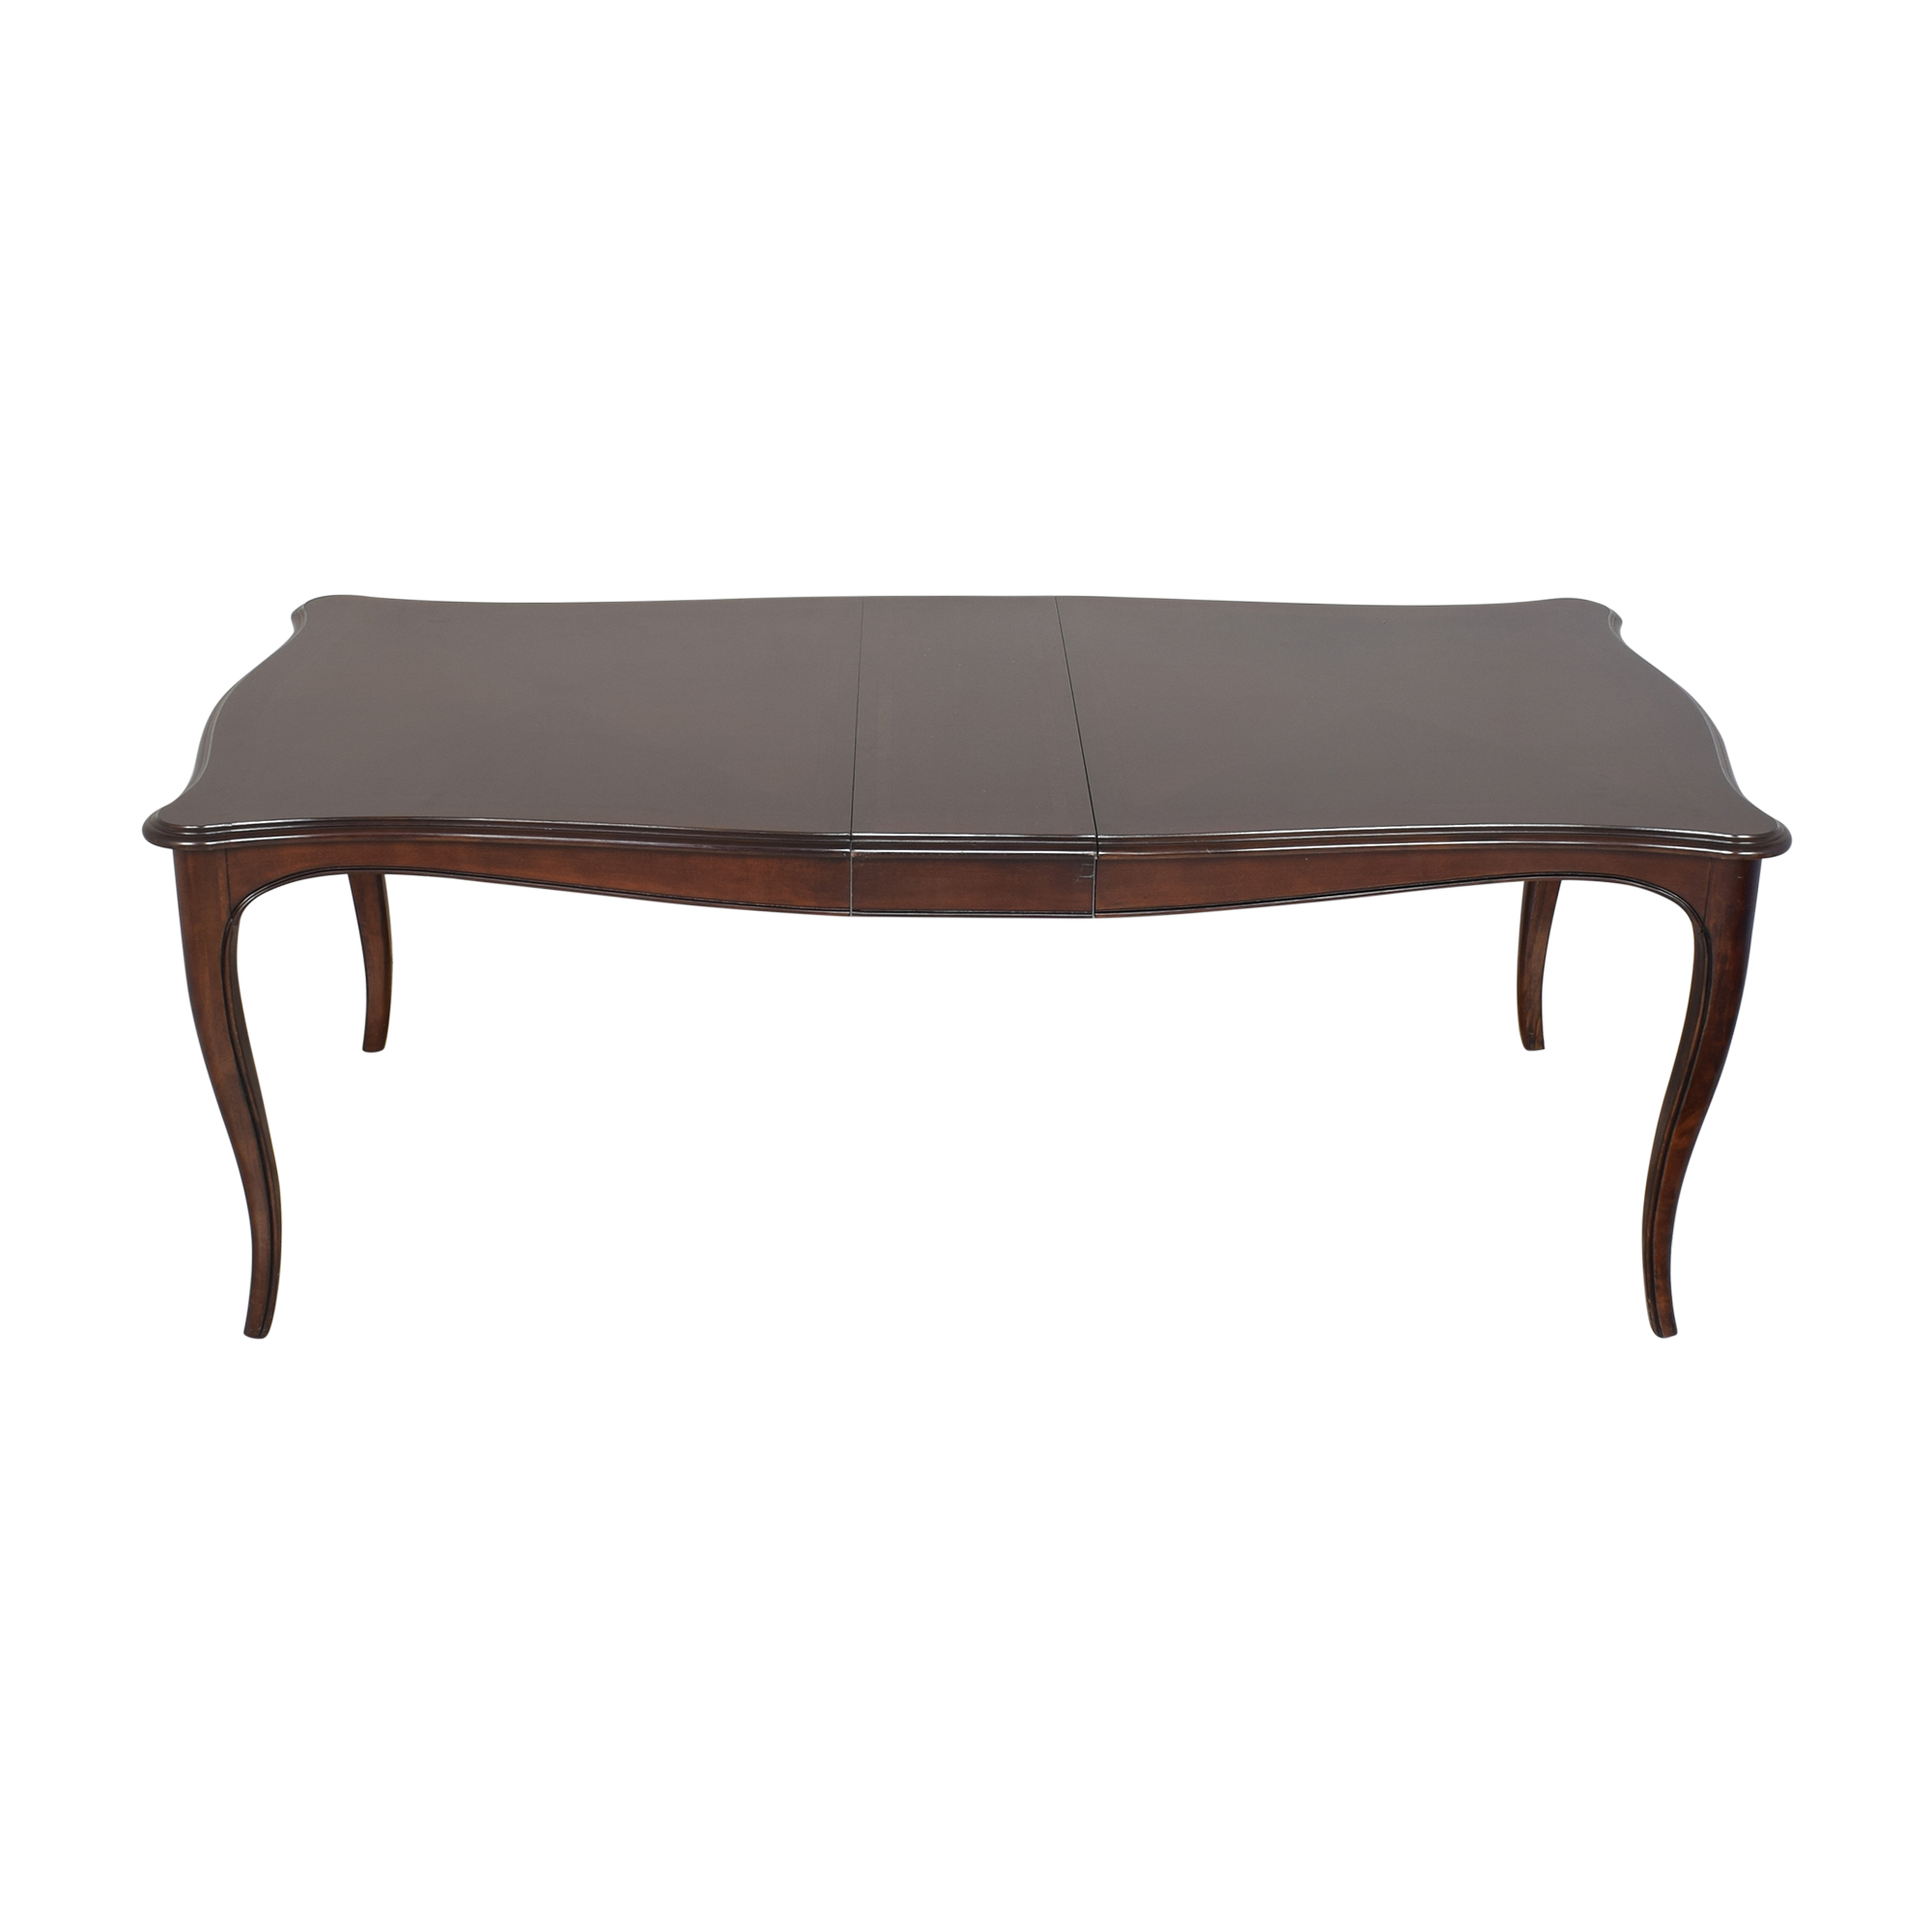 Lacquer Craft Lacquer Craft Avalon Extendable Dining Table price